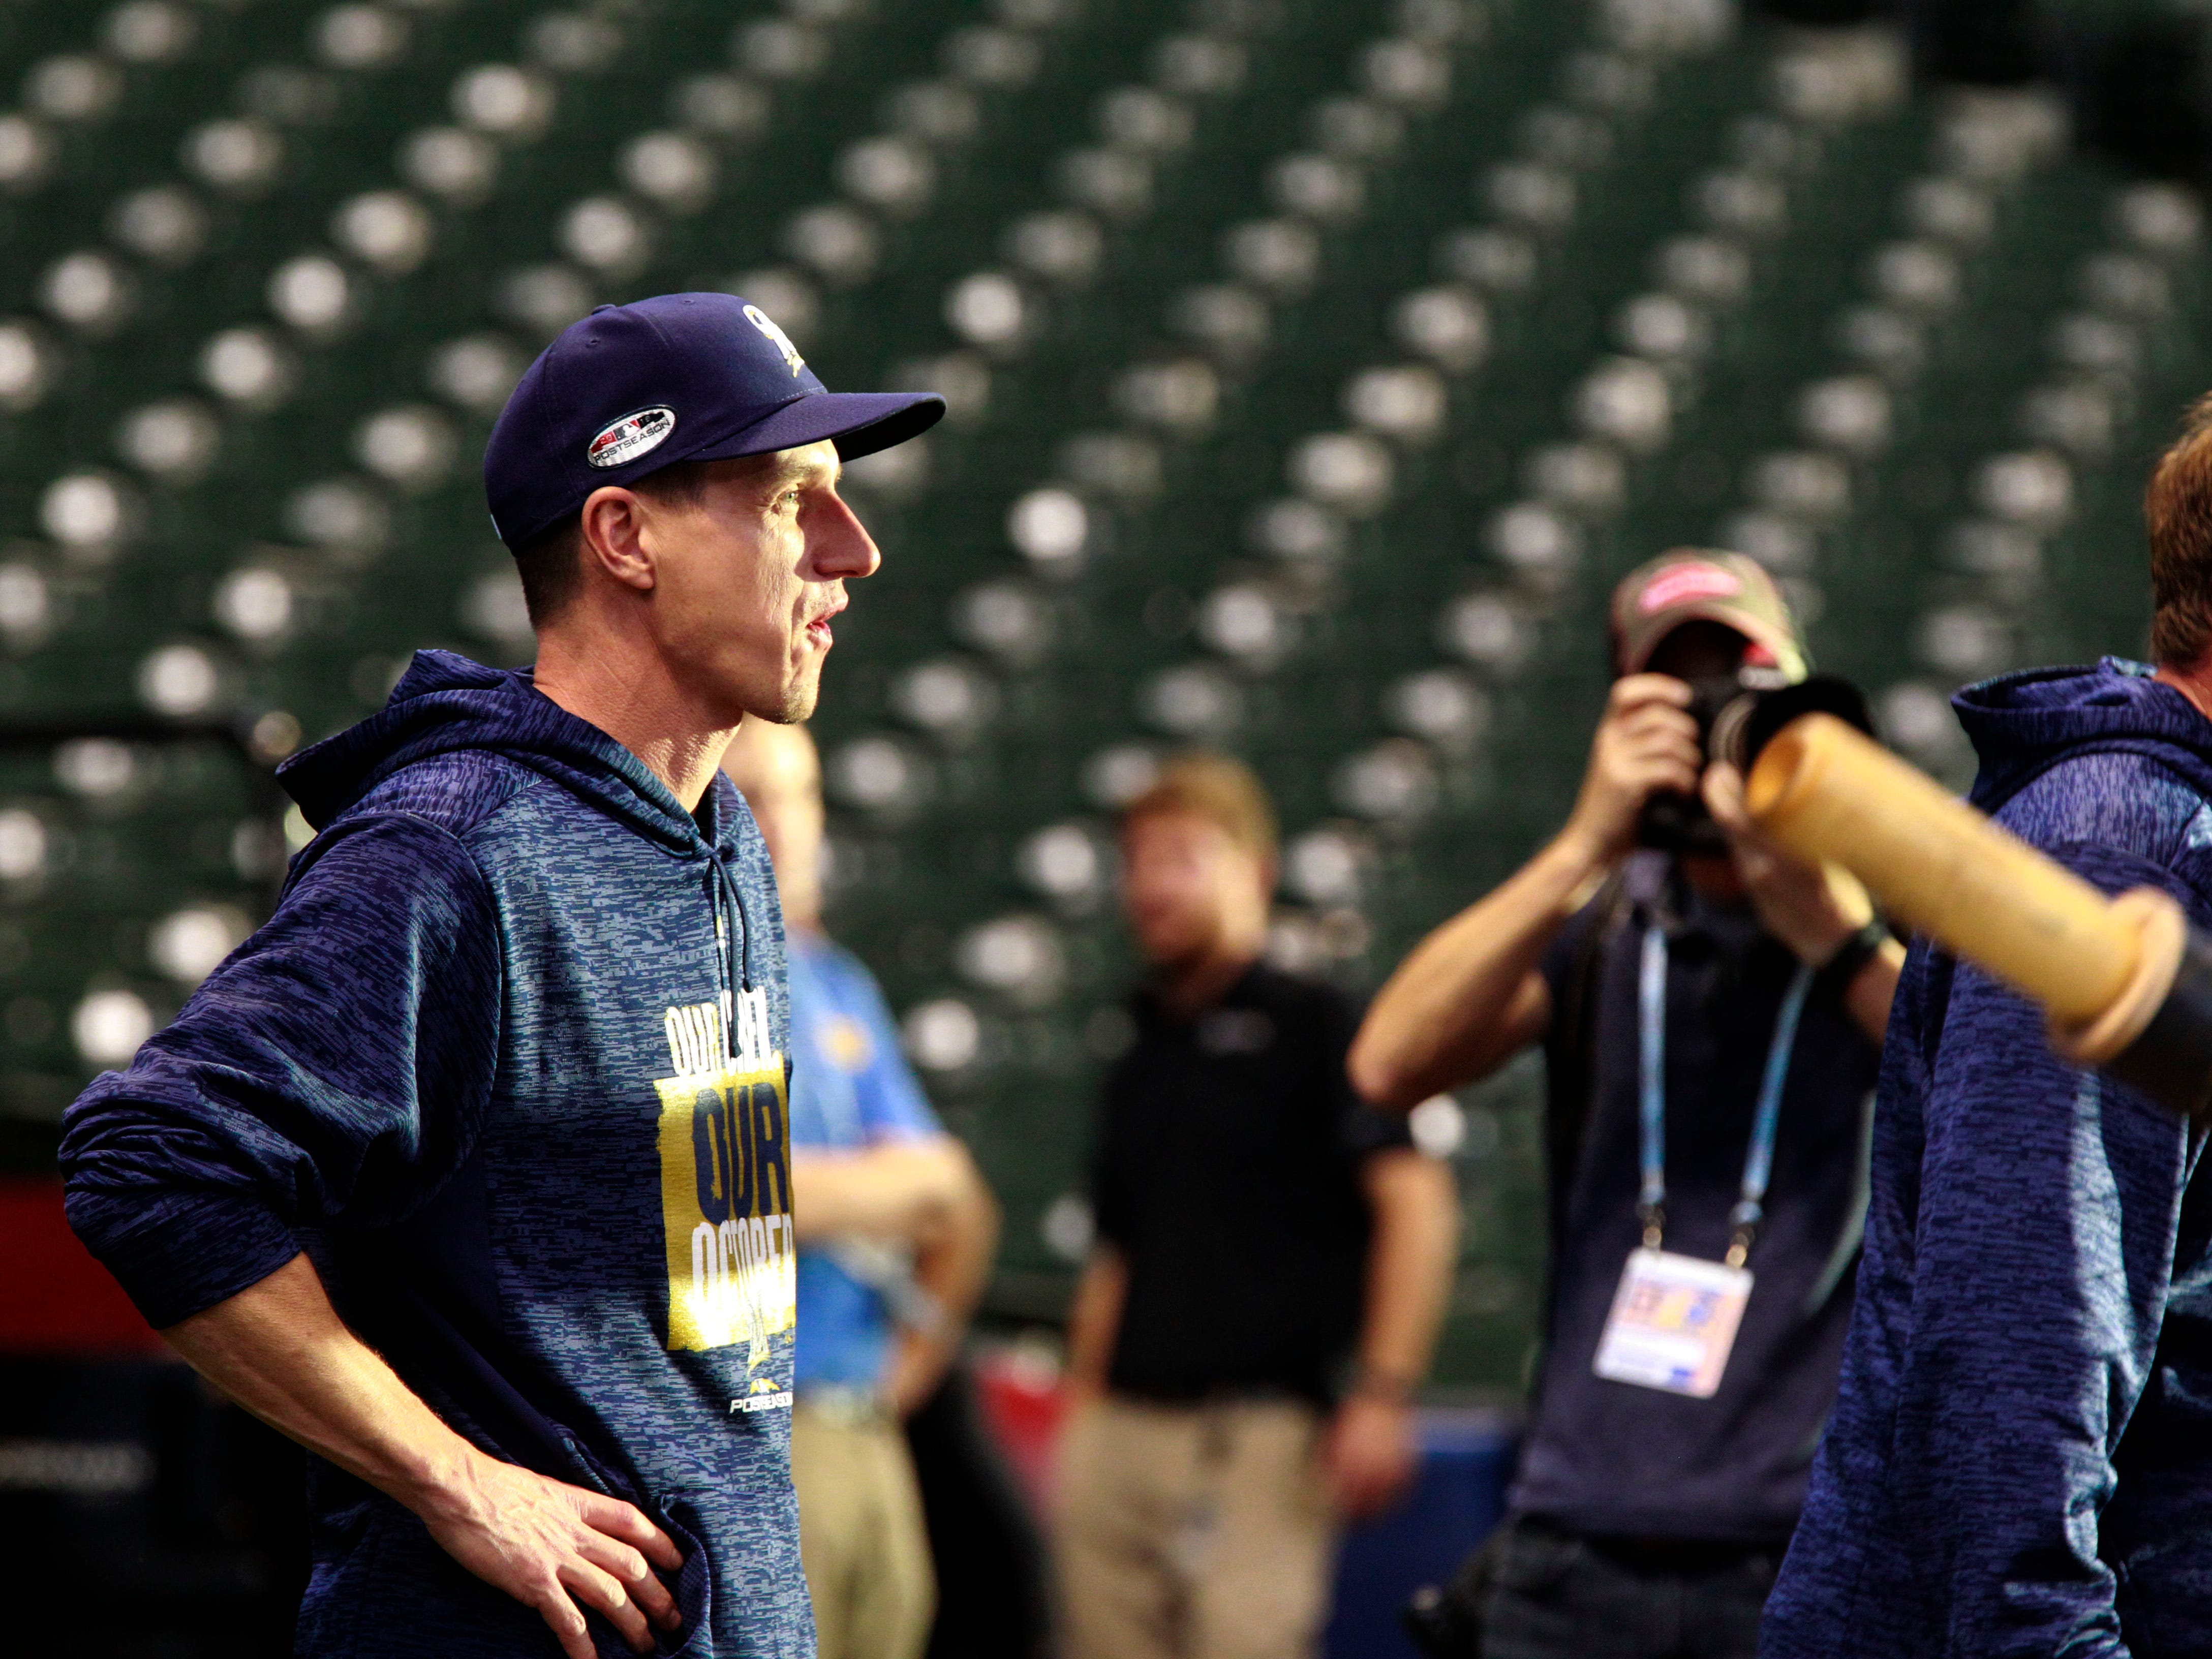 Brewers skipper Craig Counsell watches his team during batting practice on Wednesday at Miller Park.